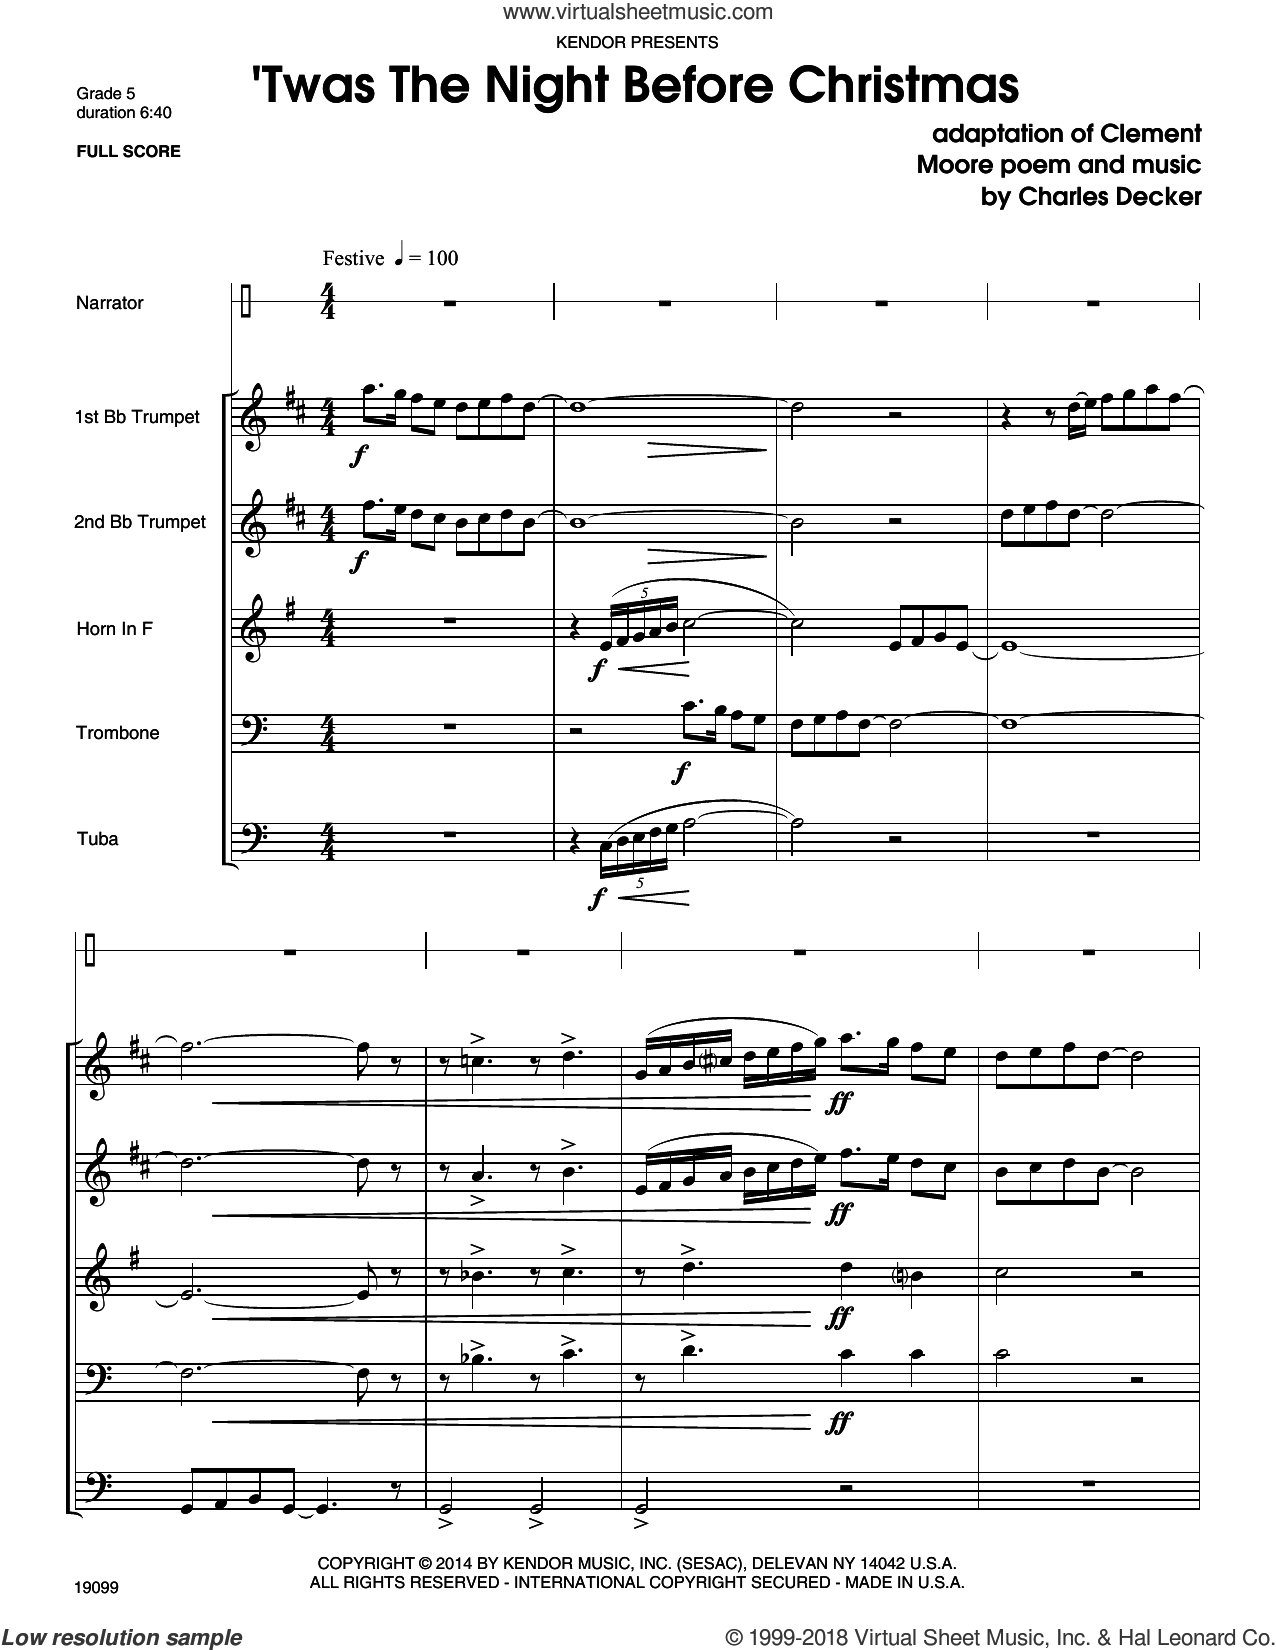 Twas The Night Before Christmas (COMPLETE) sheet music for brass quintet by Charles Decker, intermediate skill level